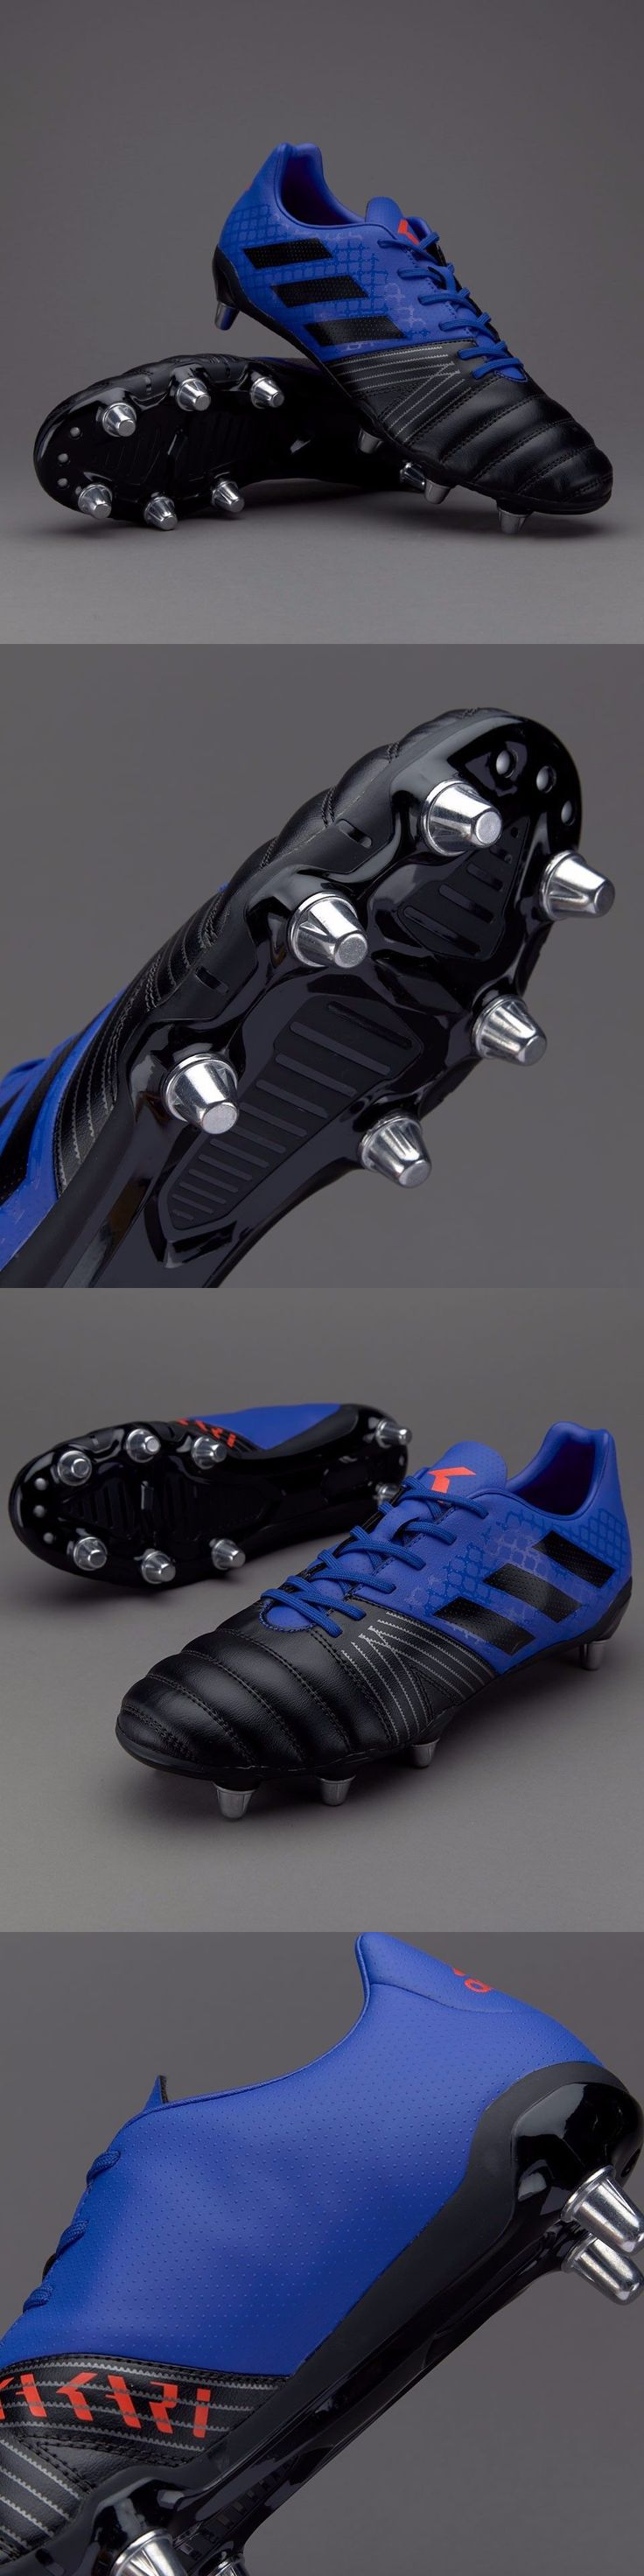 Rugby 21563: Adidas Kakari Sg Rugby Boots - Royal Black - 12.5 Us Adult New Tags Box -> BUY IT NOW ONLY: $79.99 on eBay!